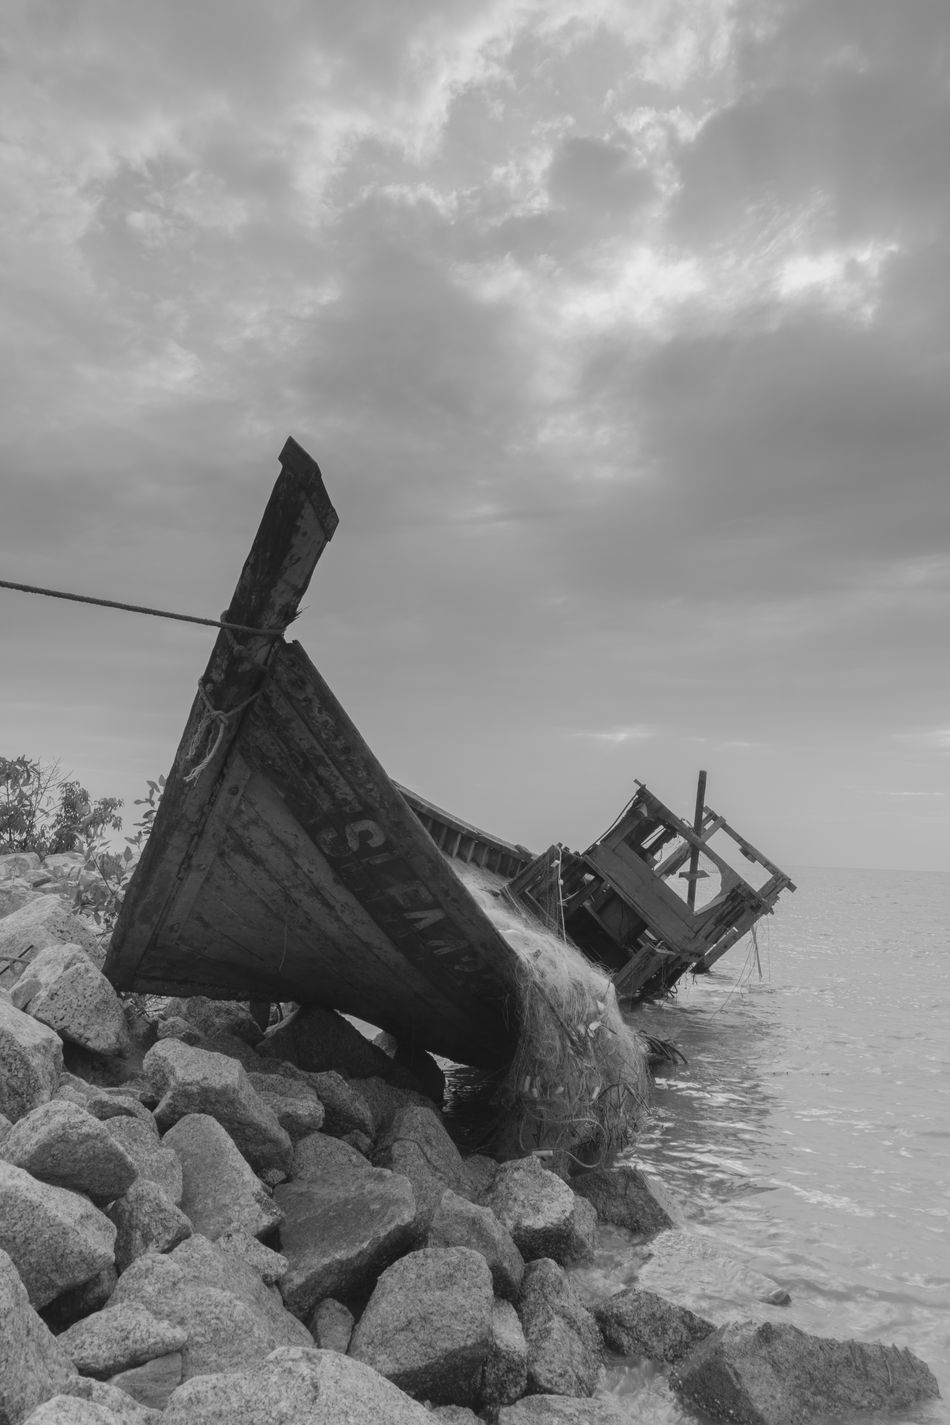 Blackandwhite Blackandwhite Photography Boat Day Nautical Vessel No People Outdoors Sky Water